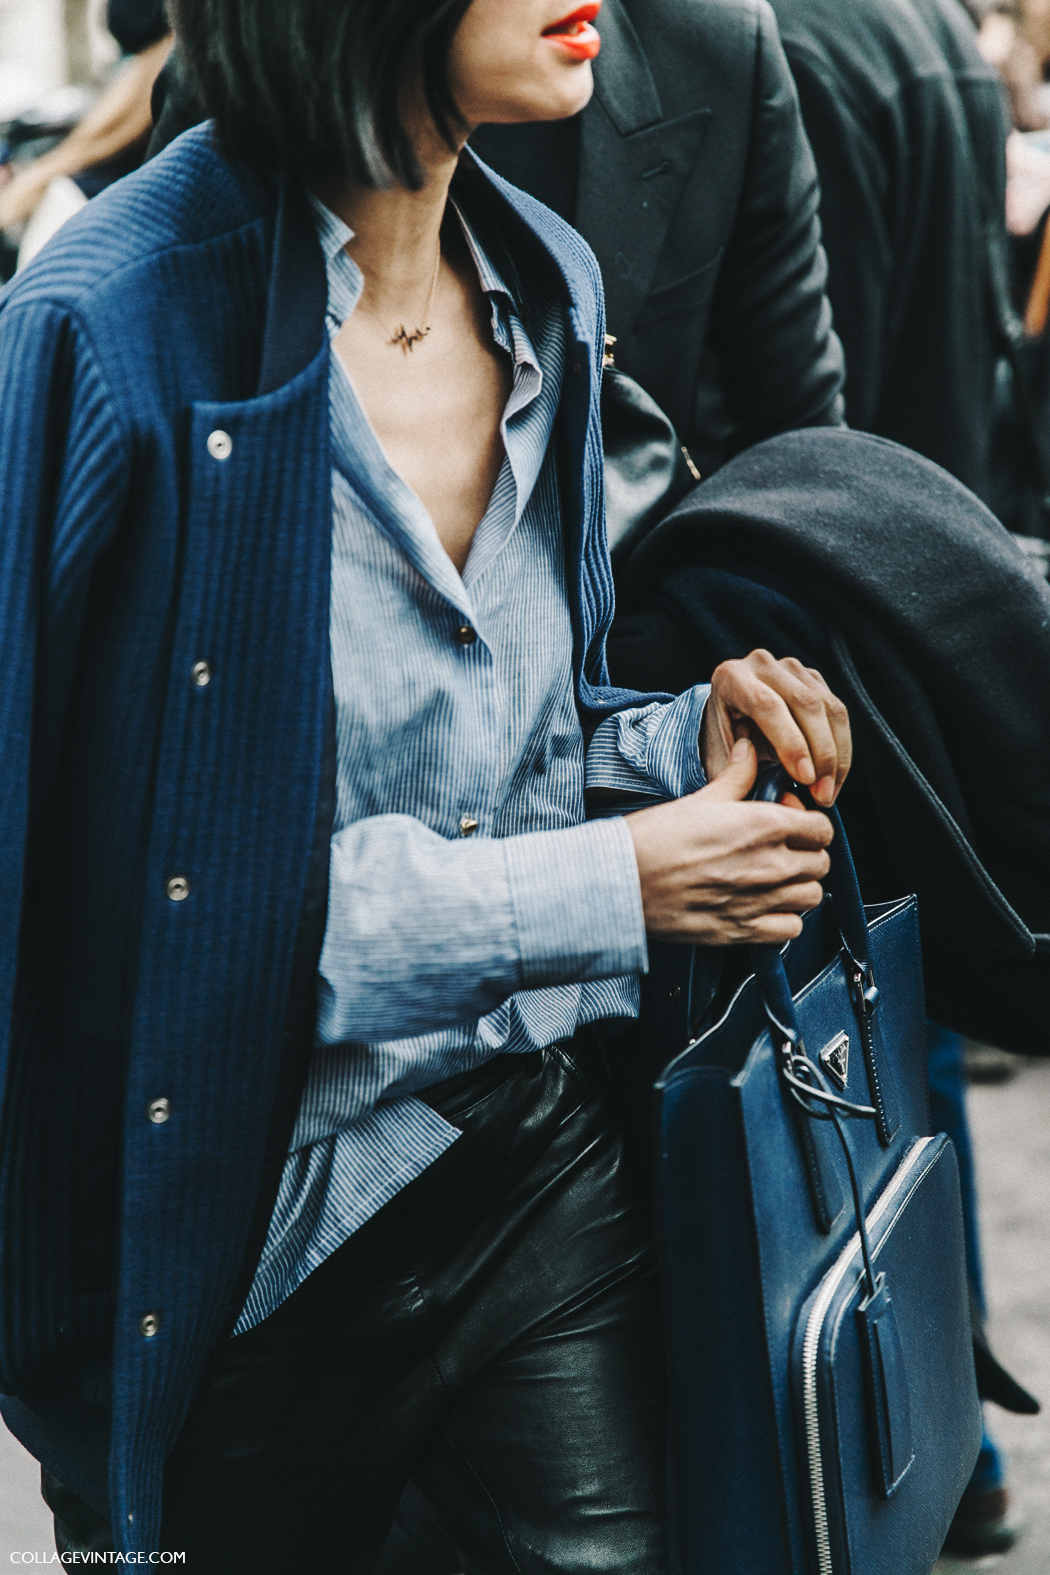 PFW-Paris_Fashion_Week_Fall_2016-Street_Style-Collage_Vintage-Miu_Miu-Blue